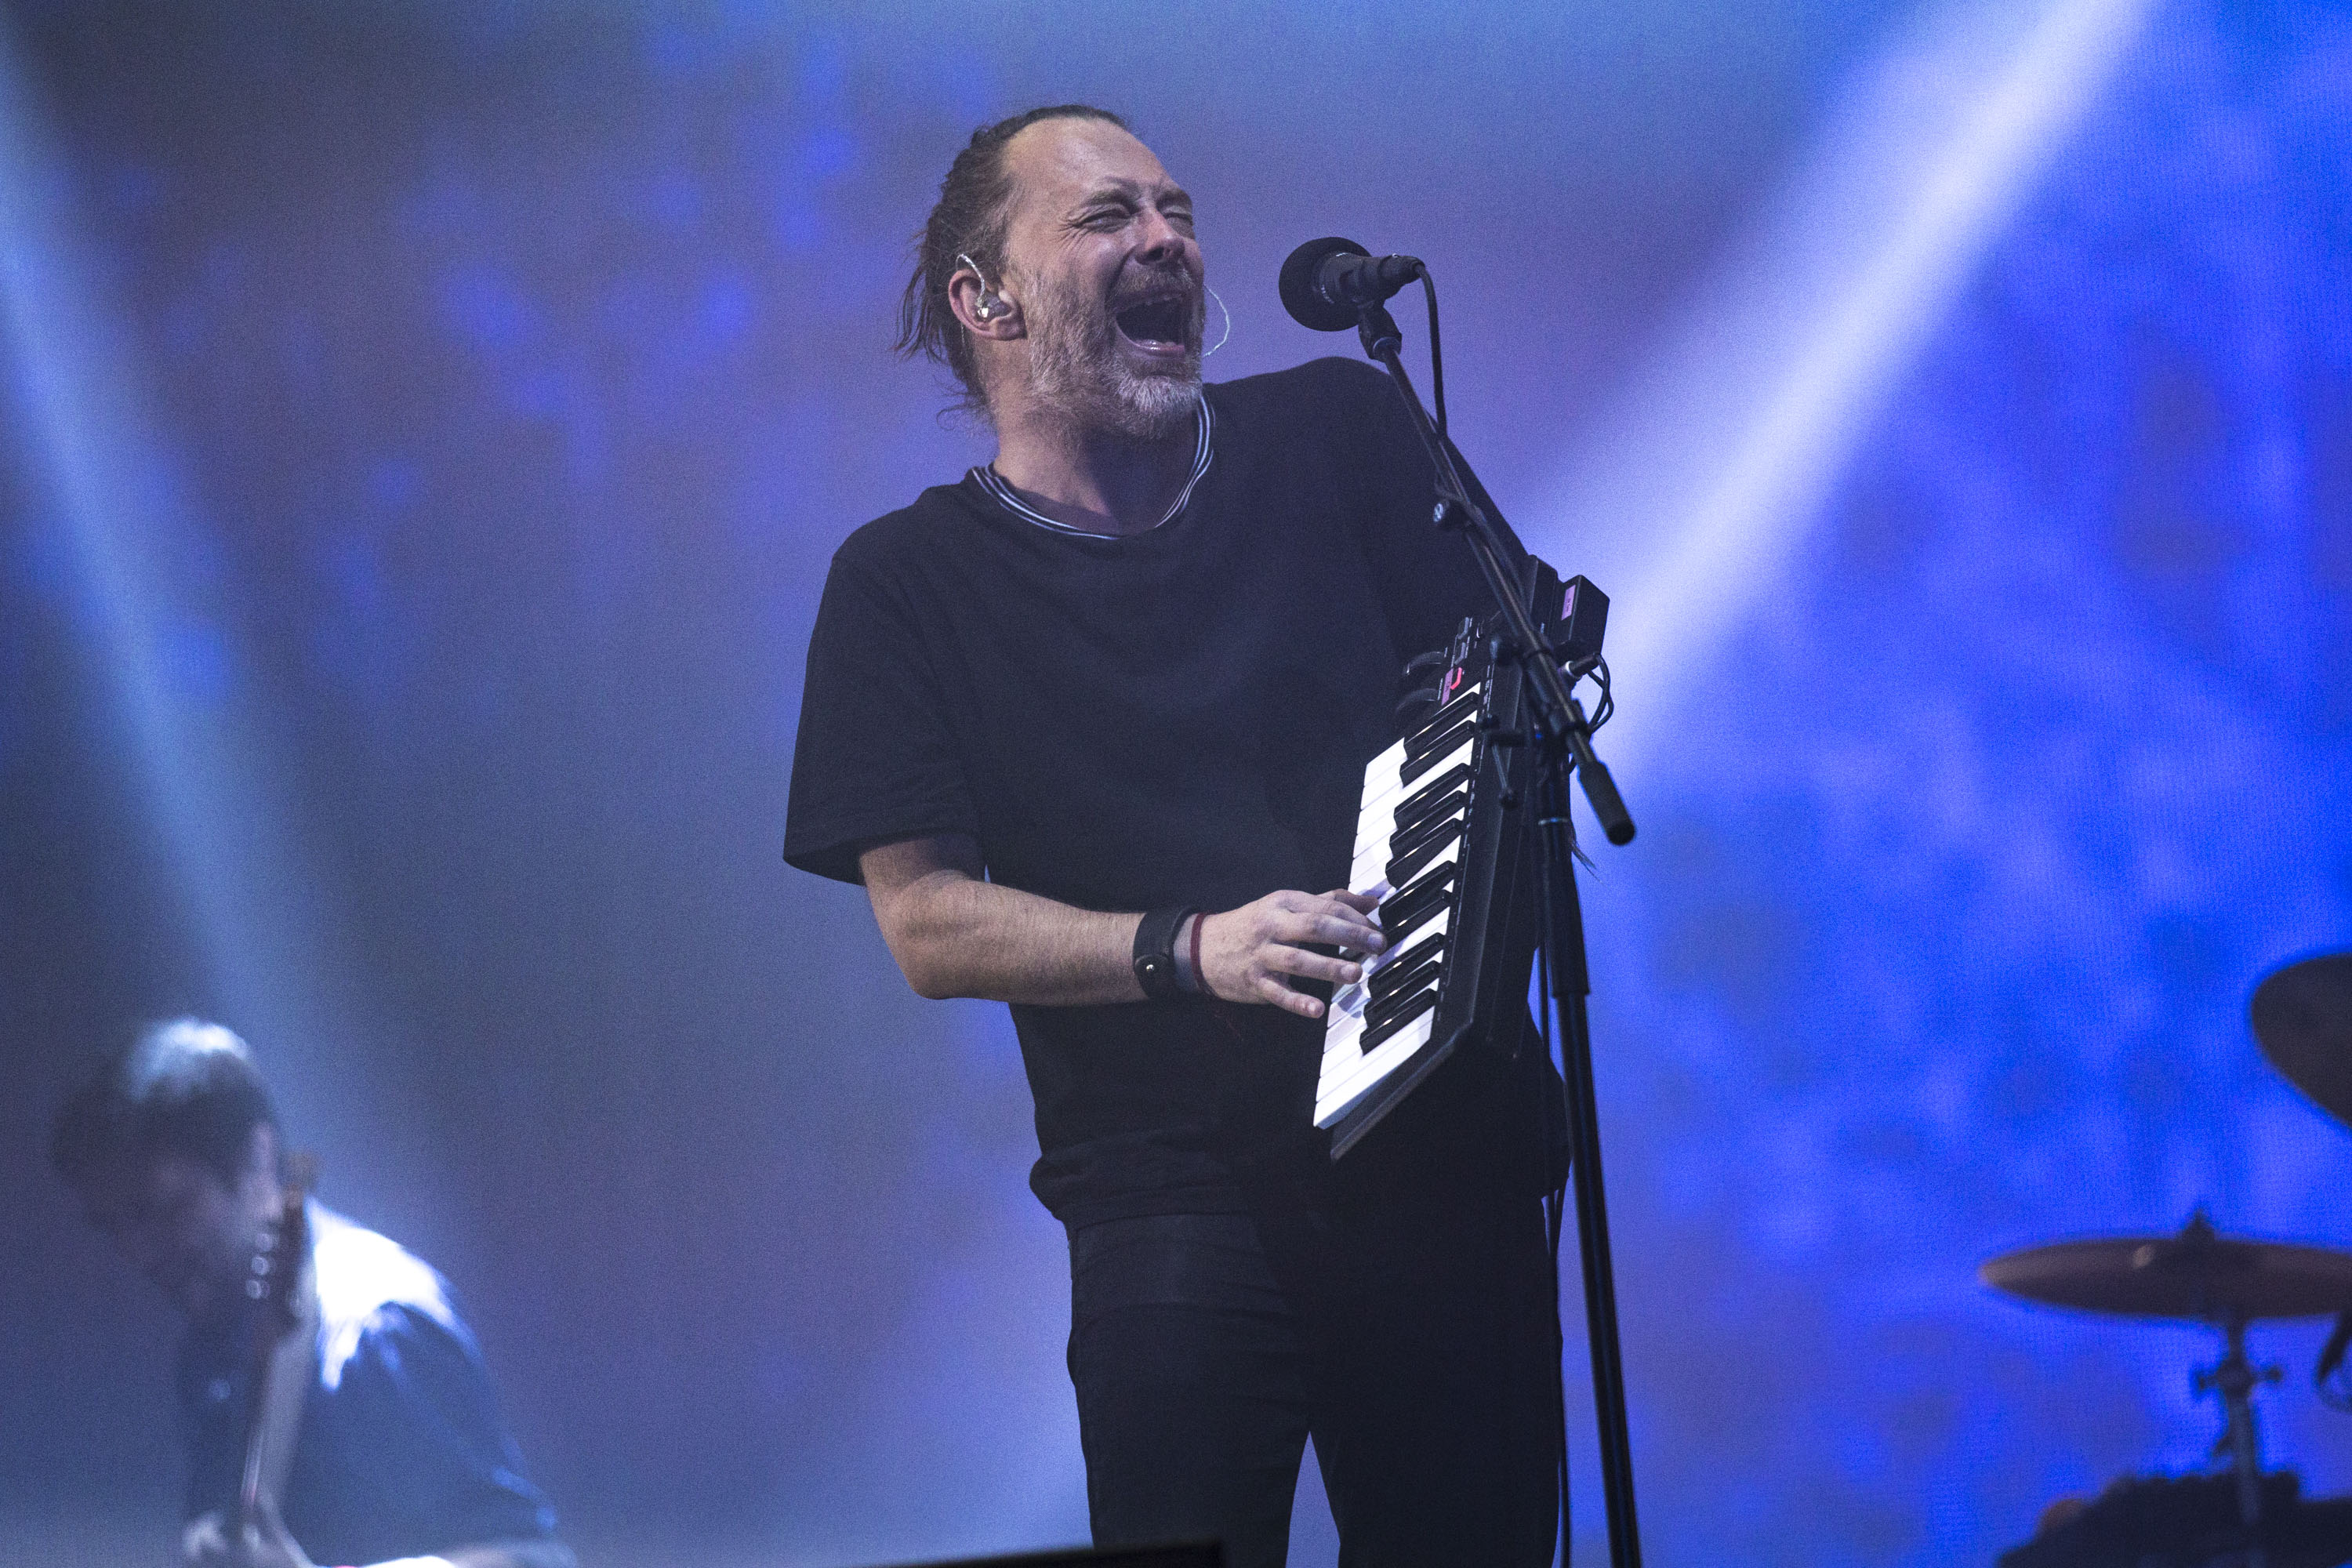 Thom Yorke says 'Hands Off The Antarctic' on new track